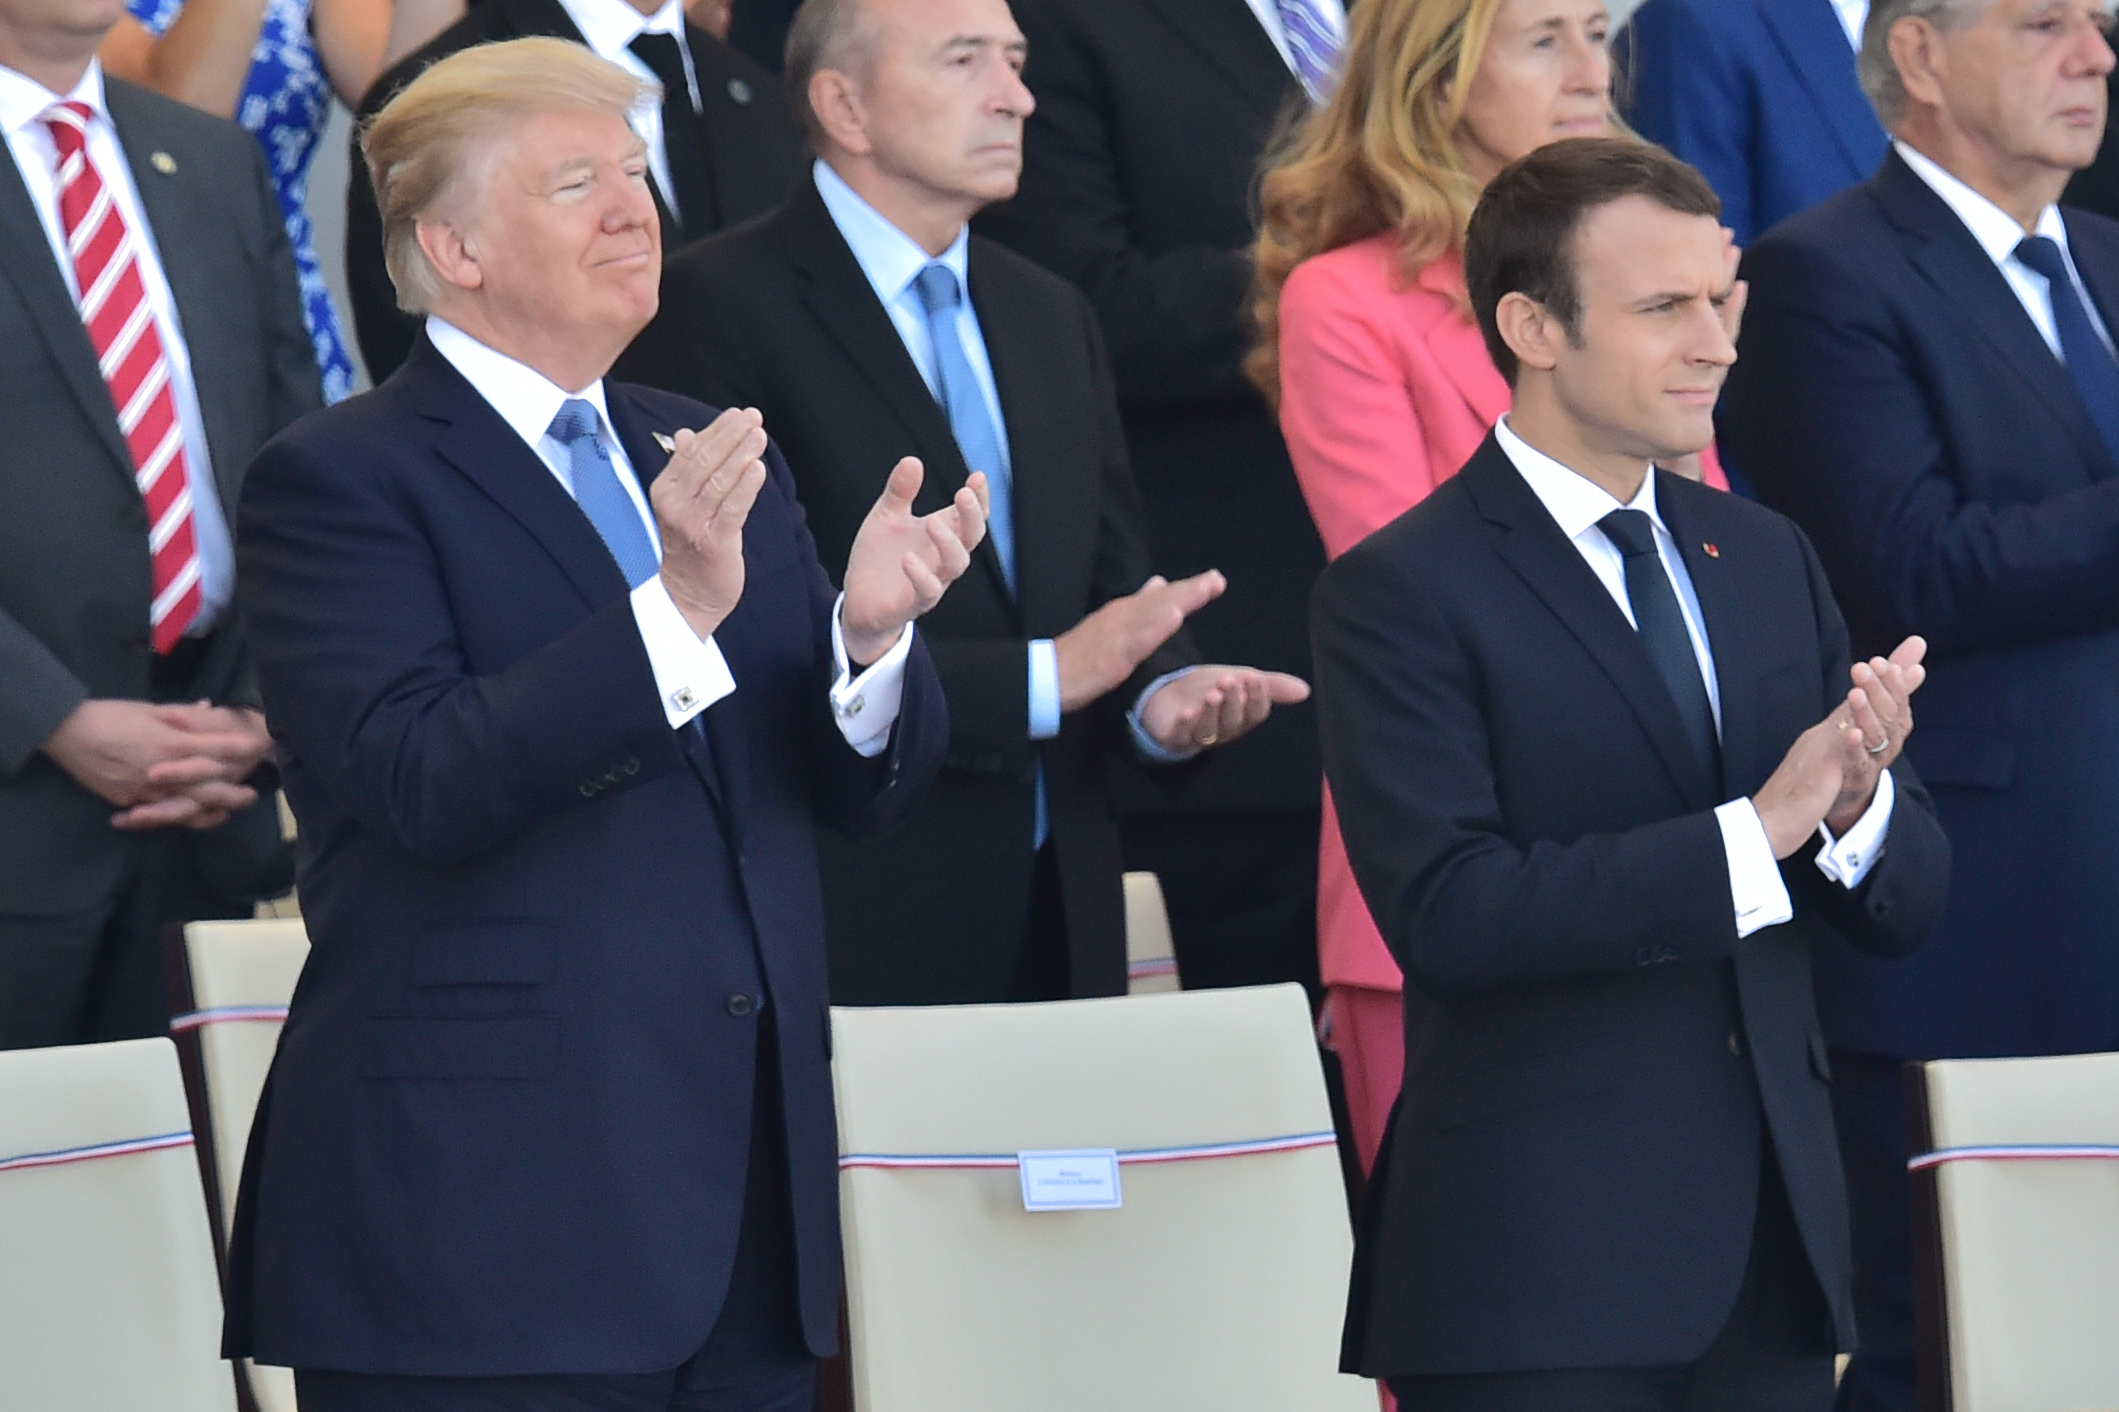 US President Donald Trump (L) and his French counterpart Emmanuel Macron applaud as they watch the annual Bastille Day military parade on the Champs-Elysees avenue in Paris on July 14, 2017. The parade on Paris's Champs-Elysees will commemorate the centenary of the US entering WWI and will feature horses, helicopters, planes and troops. CHRISTOPHE ARCHAMBAULT/AFP/Getty Images